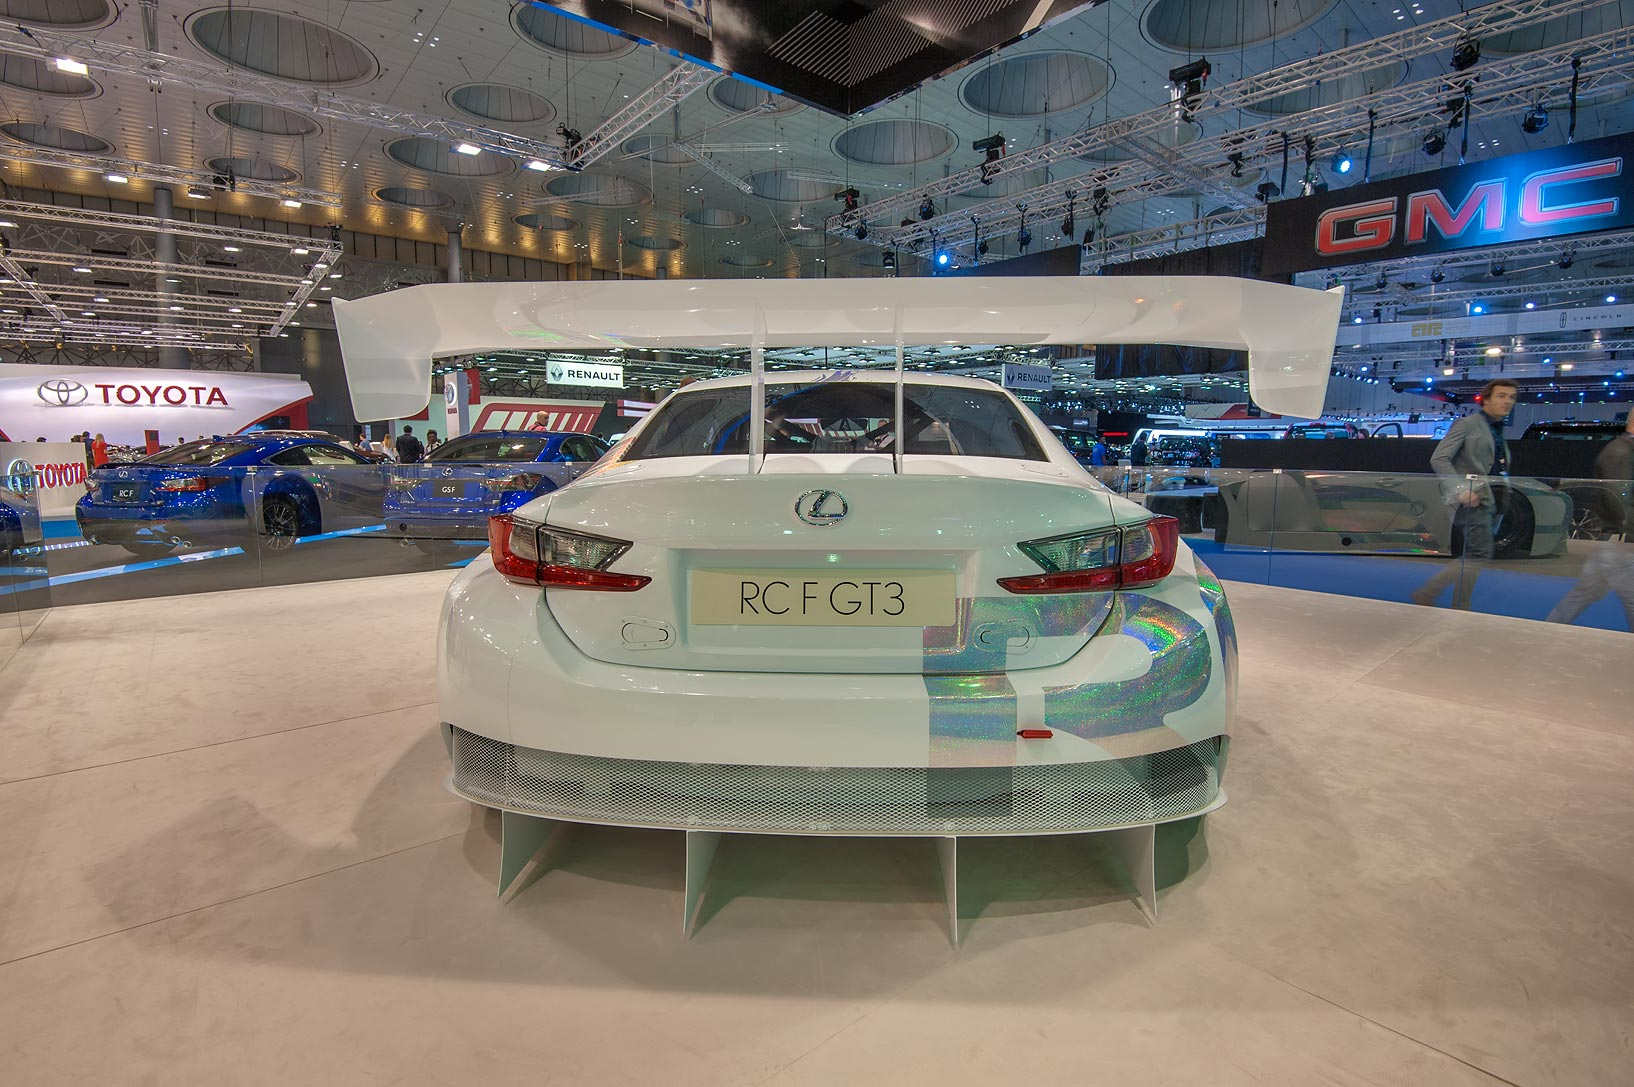 Back view of a white RCF GT3 car equipped with a...near City Center mall. Doha, Qatar